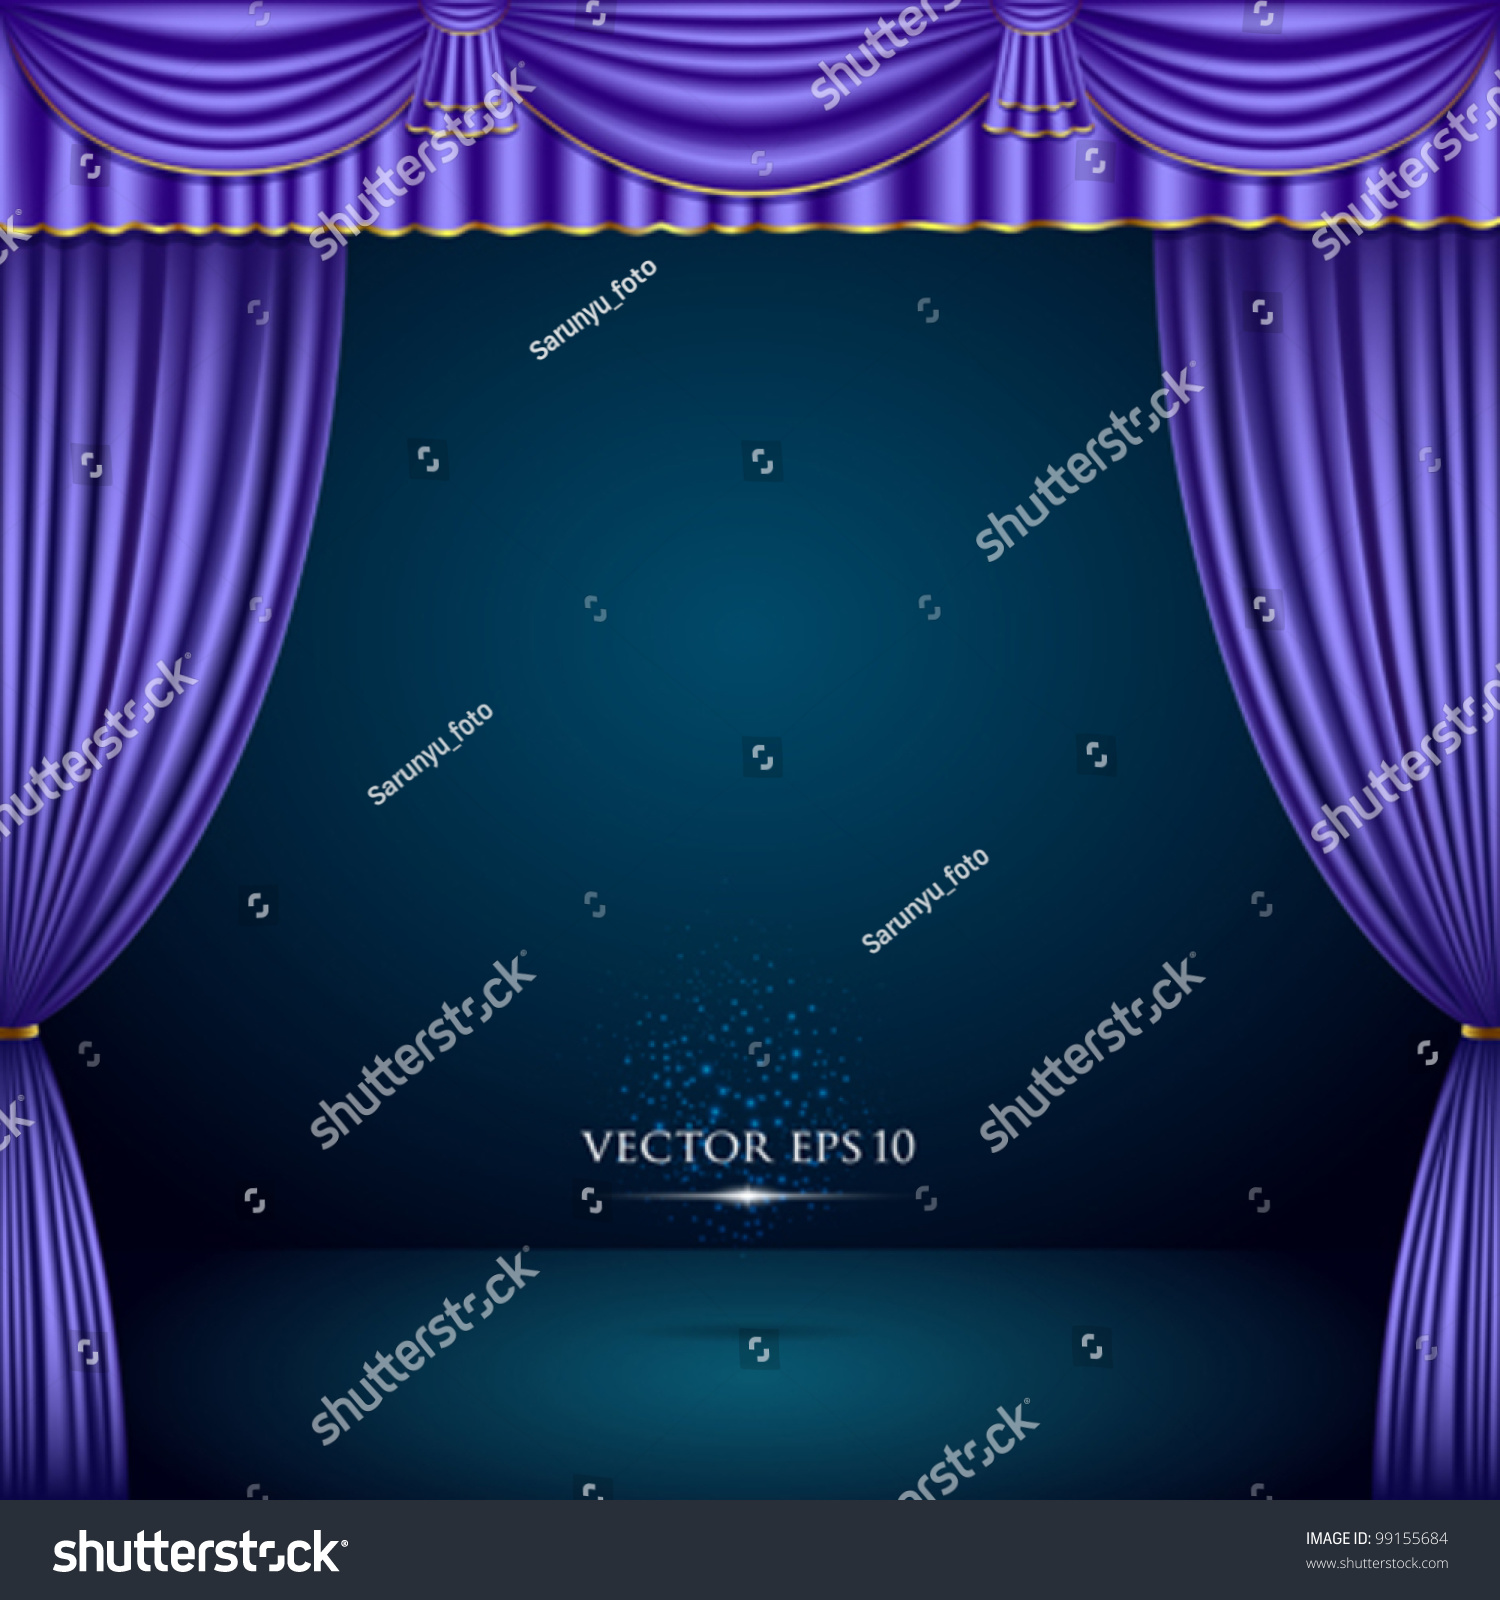 Bl blue stage curtains background - Purple And Gold Theater Curtain Classic Background Vector Illustration